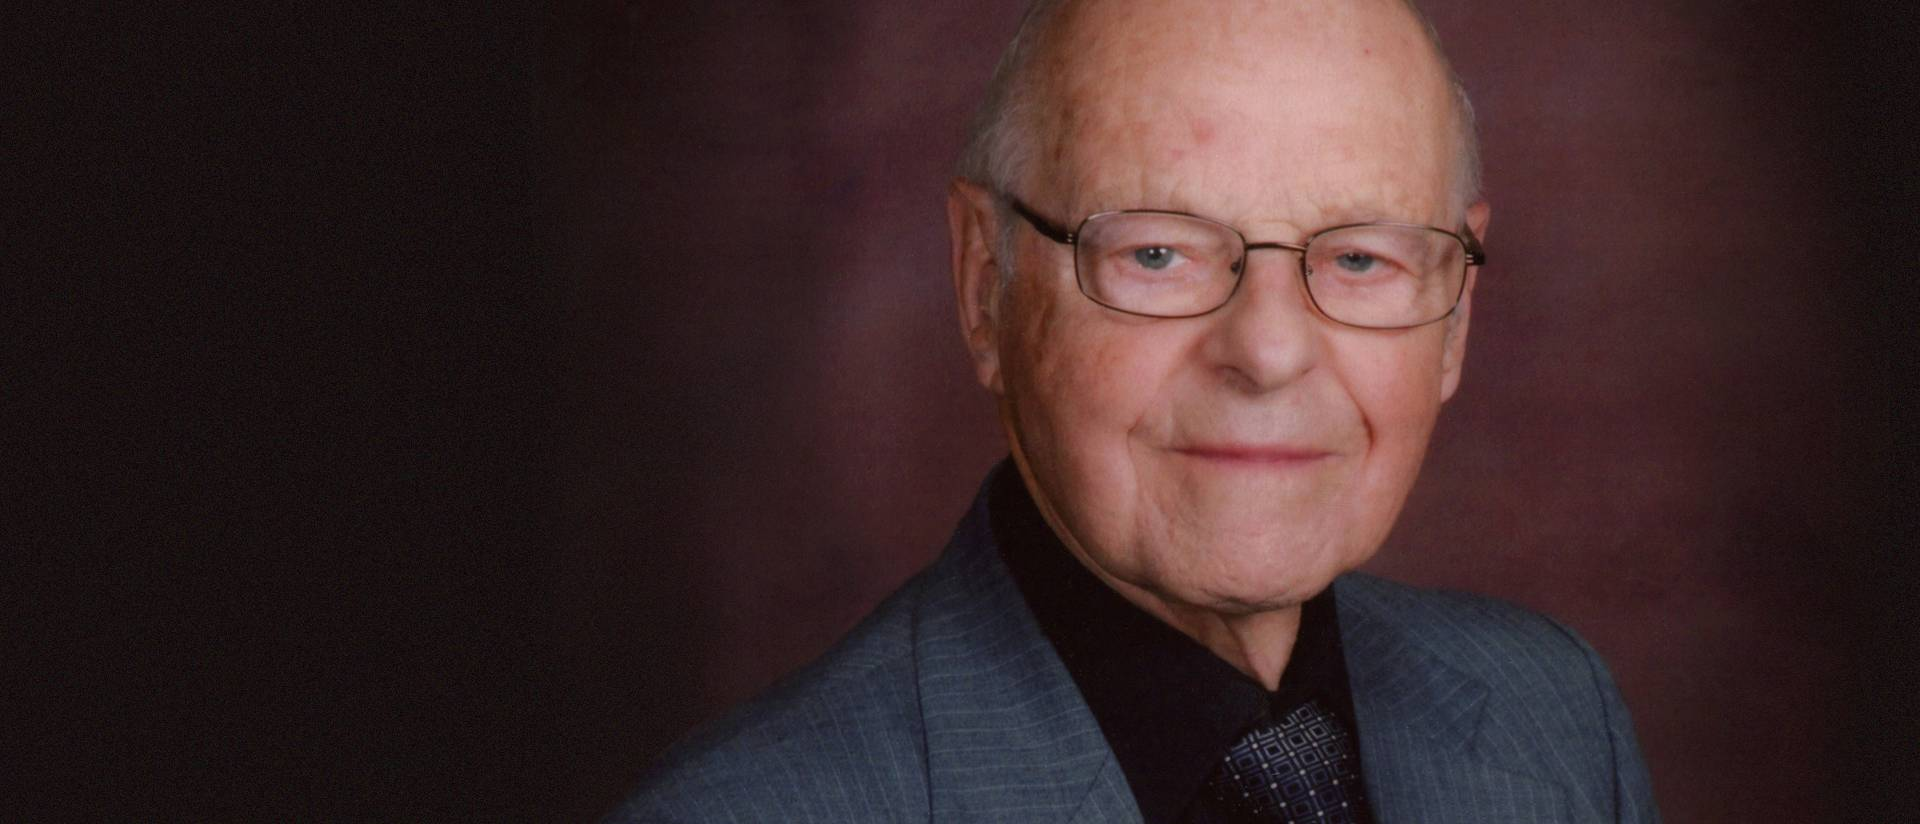 Memorial Service for Don Etnier, July 18